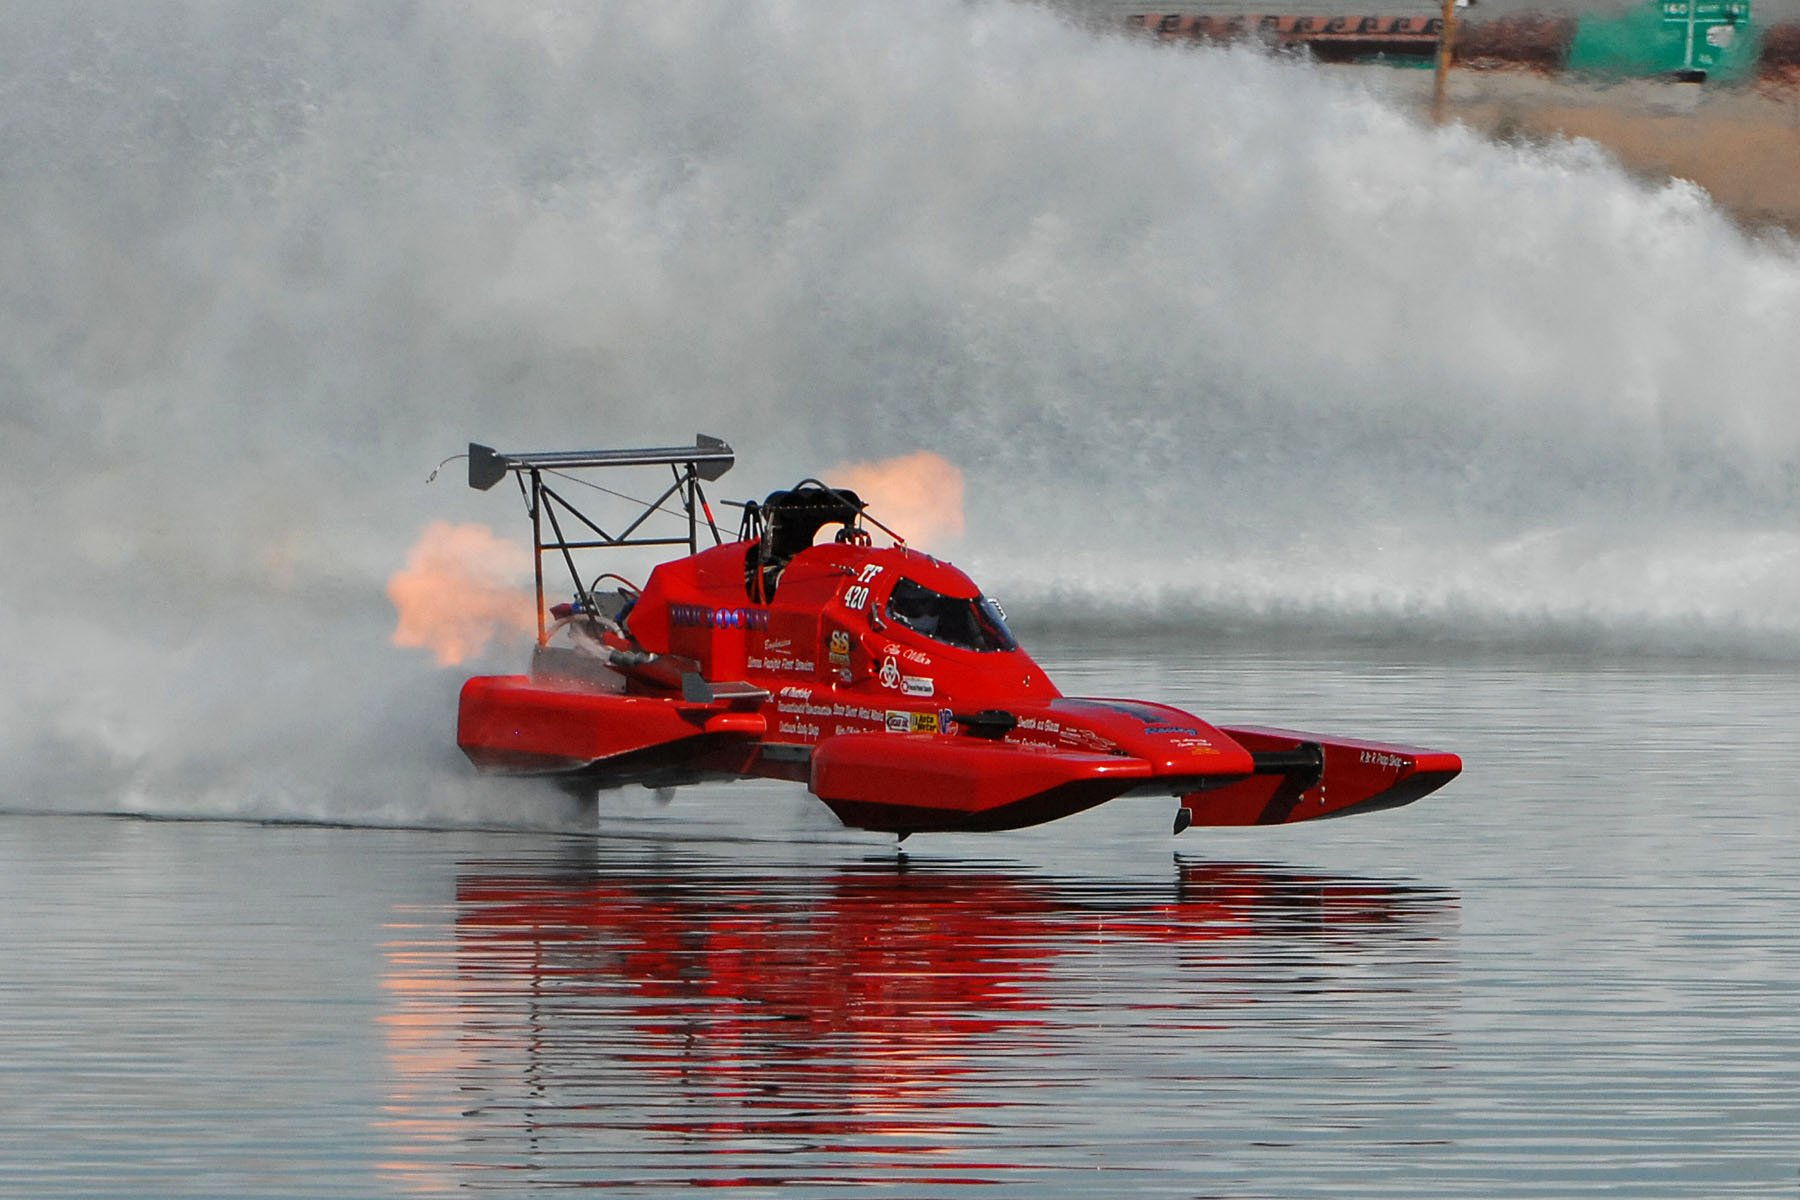 rc gas hydroplane boat with Drag Boat Race Racing Ship Hot Rod Rods Drag Boat Custom on Wood Rc Sailboat Plans Free in addition DRAG BOAT race racing ship hot rod rods drag boat custom furthermore Rc Model Boat Hull Plans likewise 104799 Rc Boat 8 additionally 214.